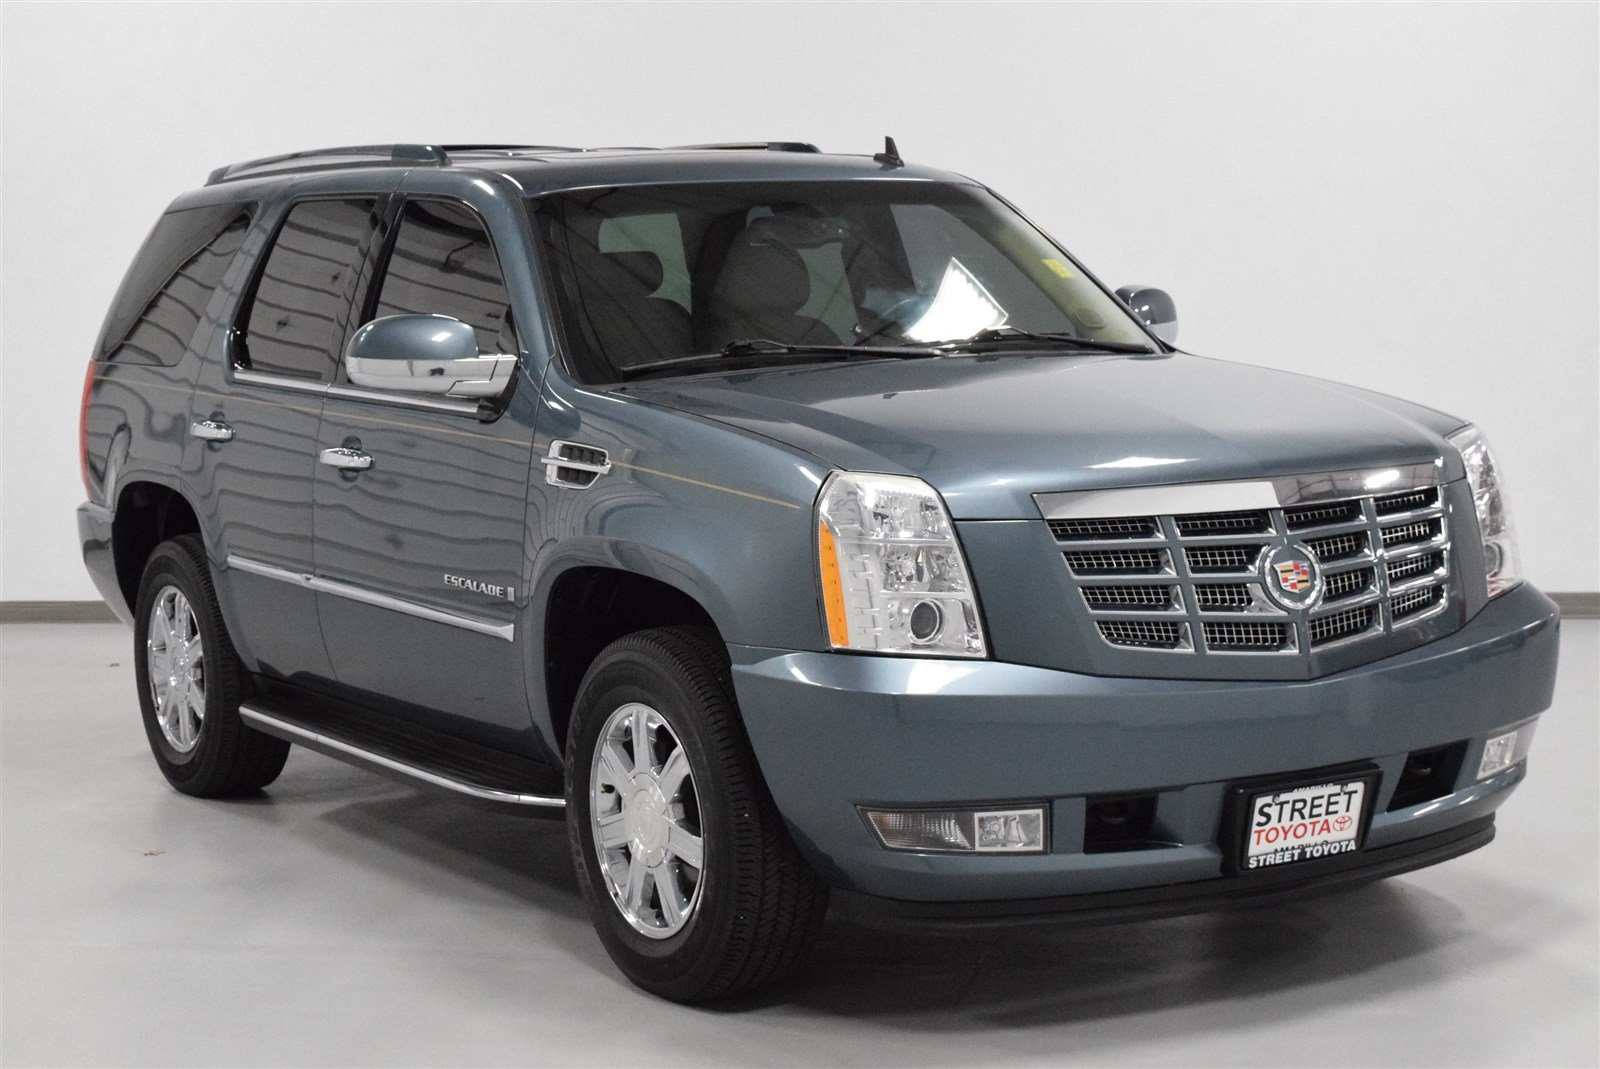 cadillac premium vehicledetails buick strickland on brantford chevrolet s used gmc at owned for escalade pre sale